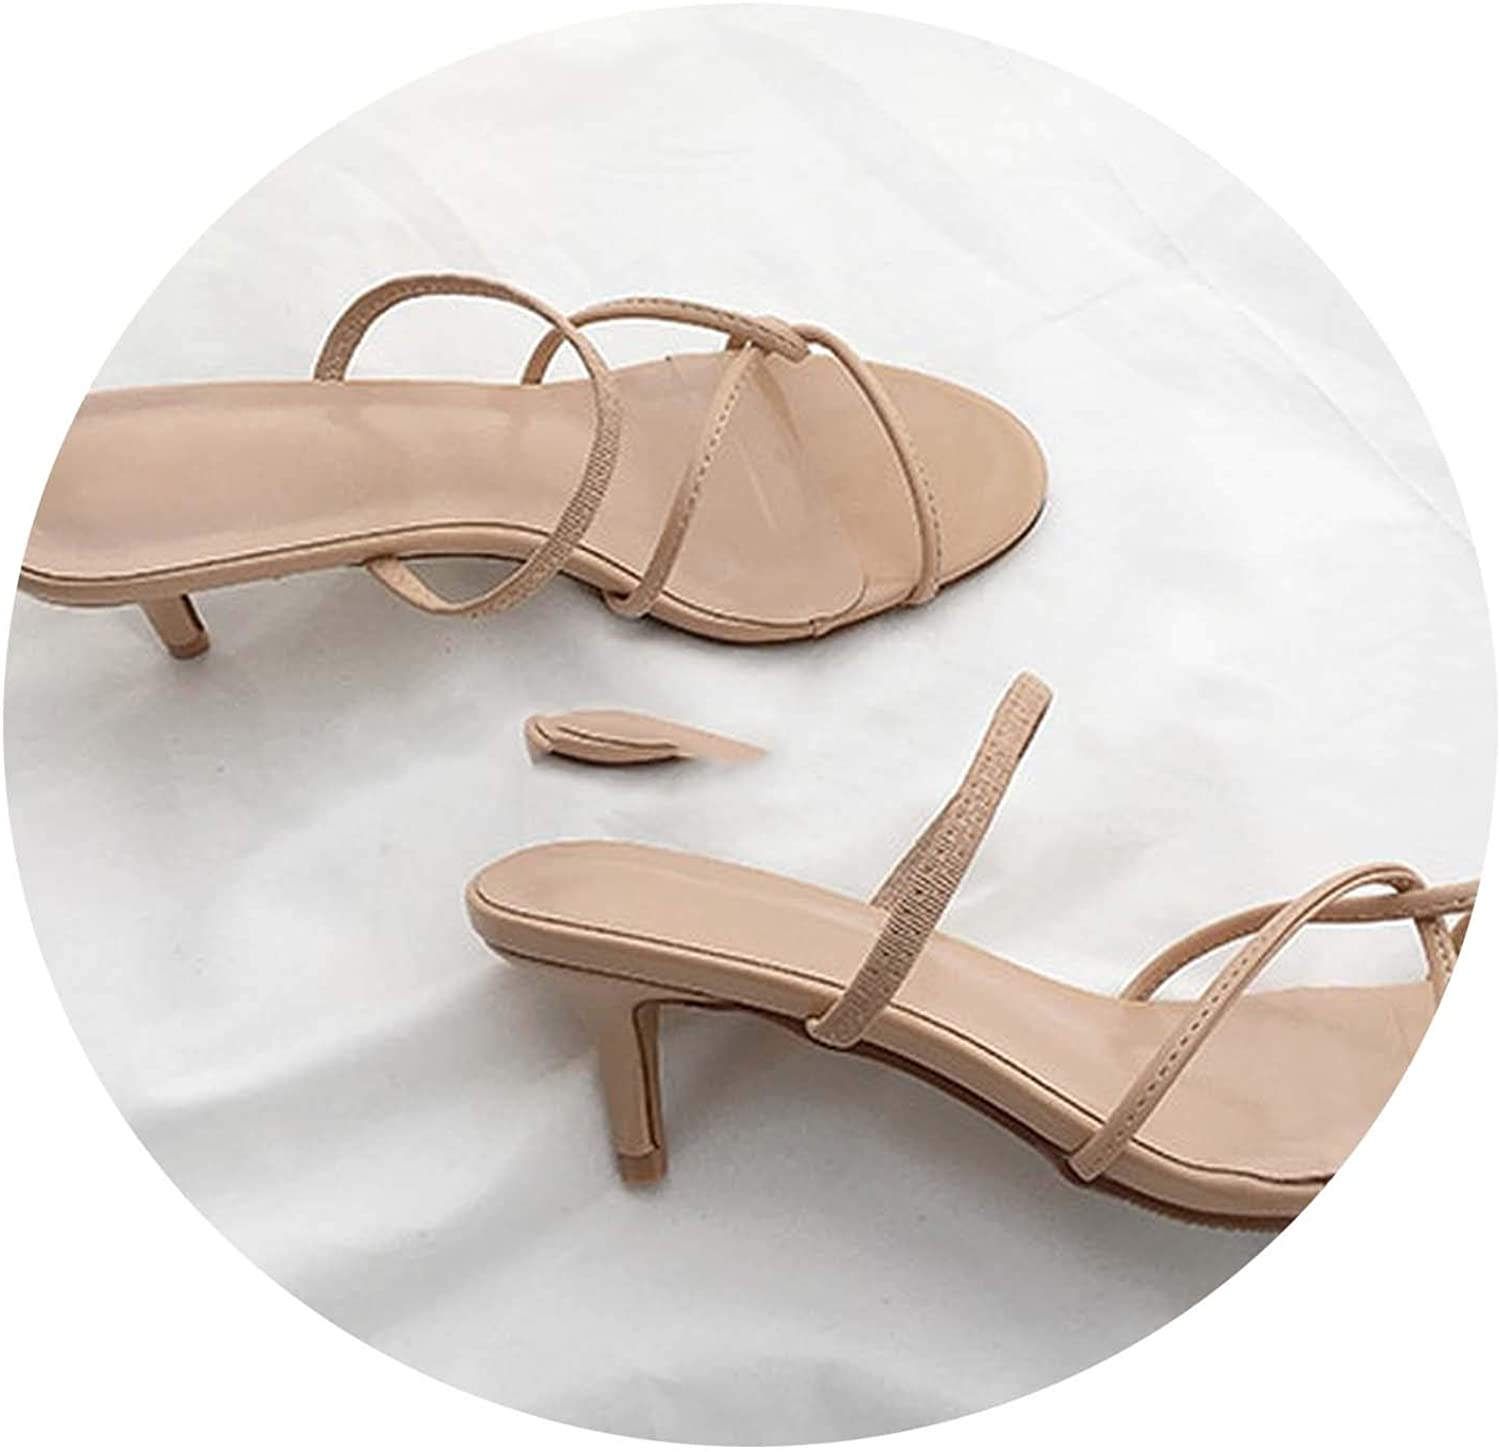 2019 New Sandals Female Summer Wear Medium with Two Sandals Open Toe High Heels 5cm Fine with Nude color,6.5